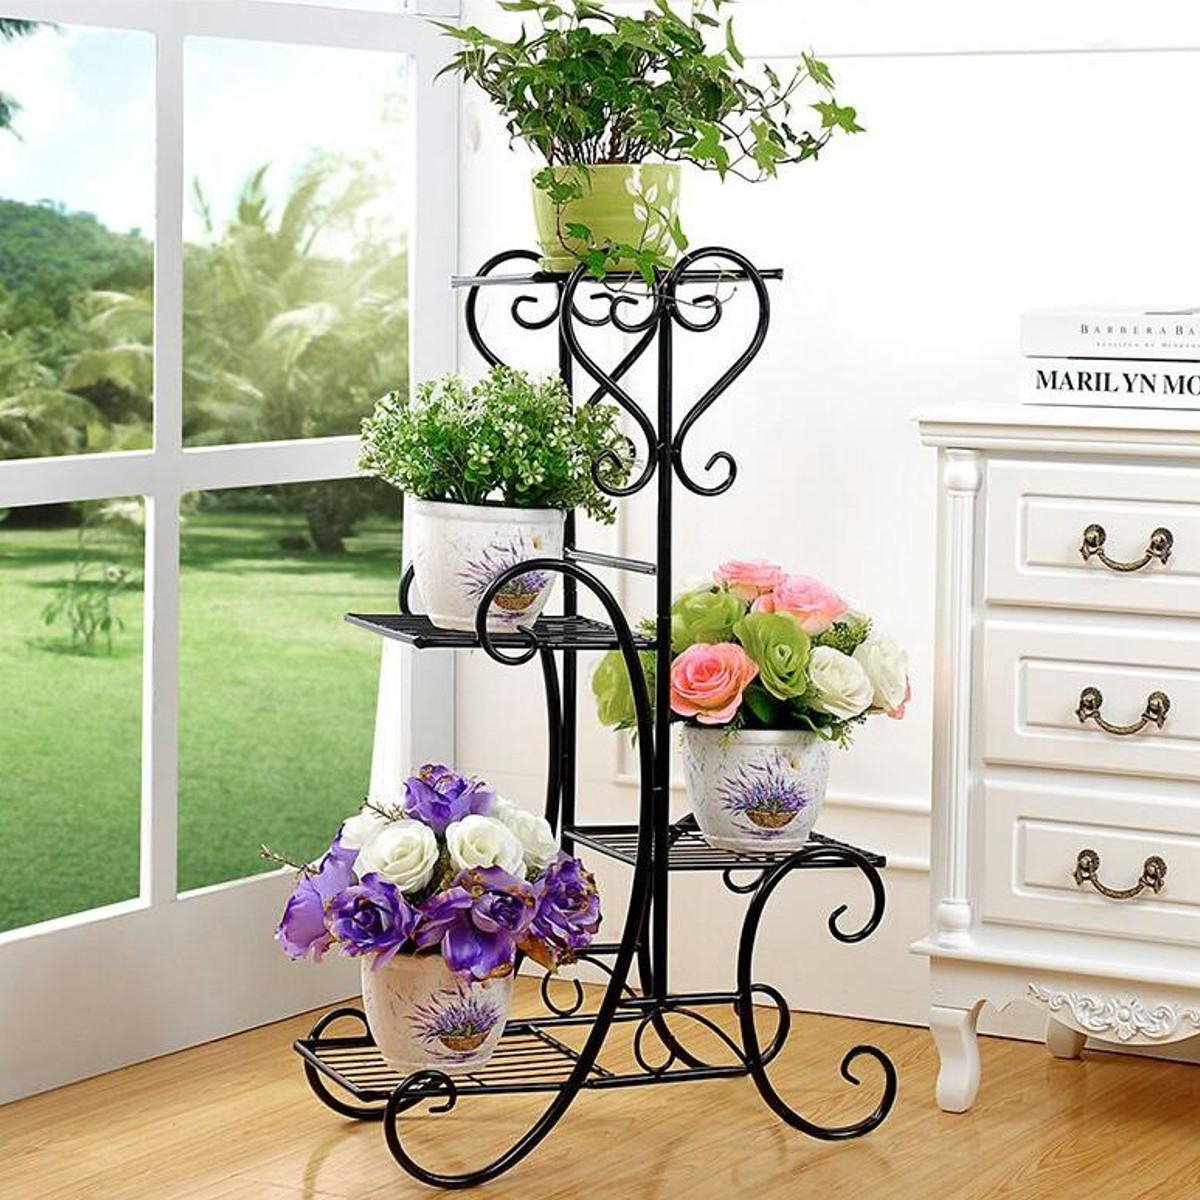 84x48x25cm 4 Tiers Metal Flower Plant Display Stand Black Home Garden Indoor Outdoor Plant Flower Pot Storage Rack Corner Shelf84x48x25cm 4 Tiers Metal Flower Plant Display Stand Black Home Garden Indoor Outdoor Plant Flower Pot Storage Rack Corner Shelf